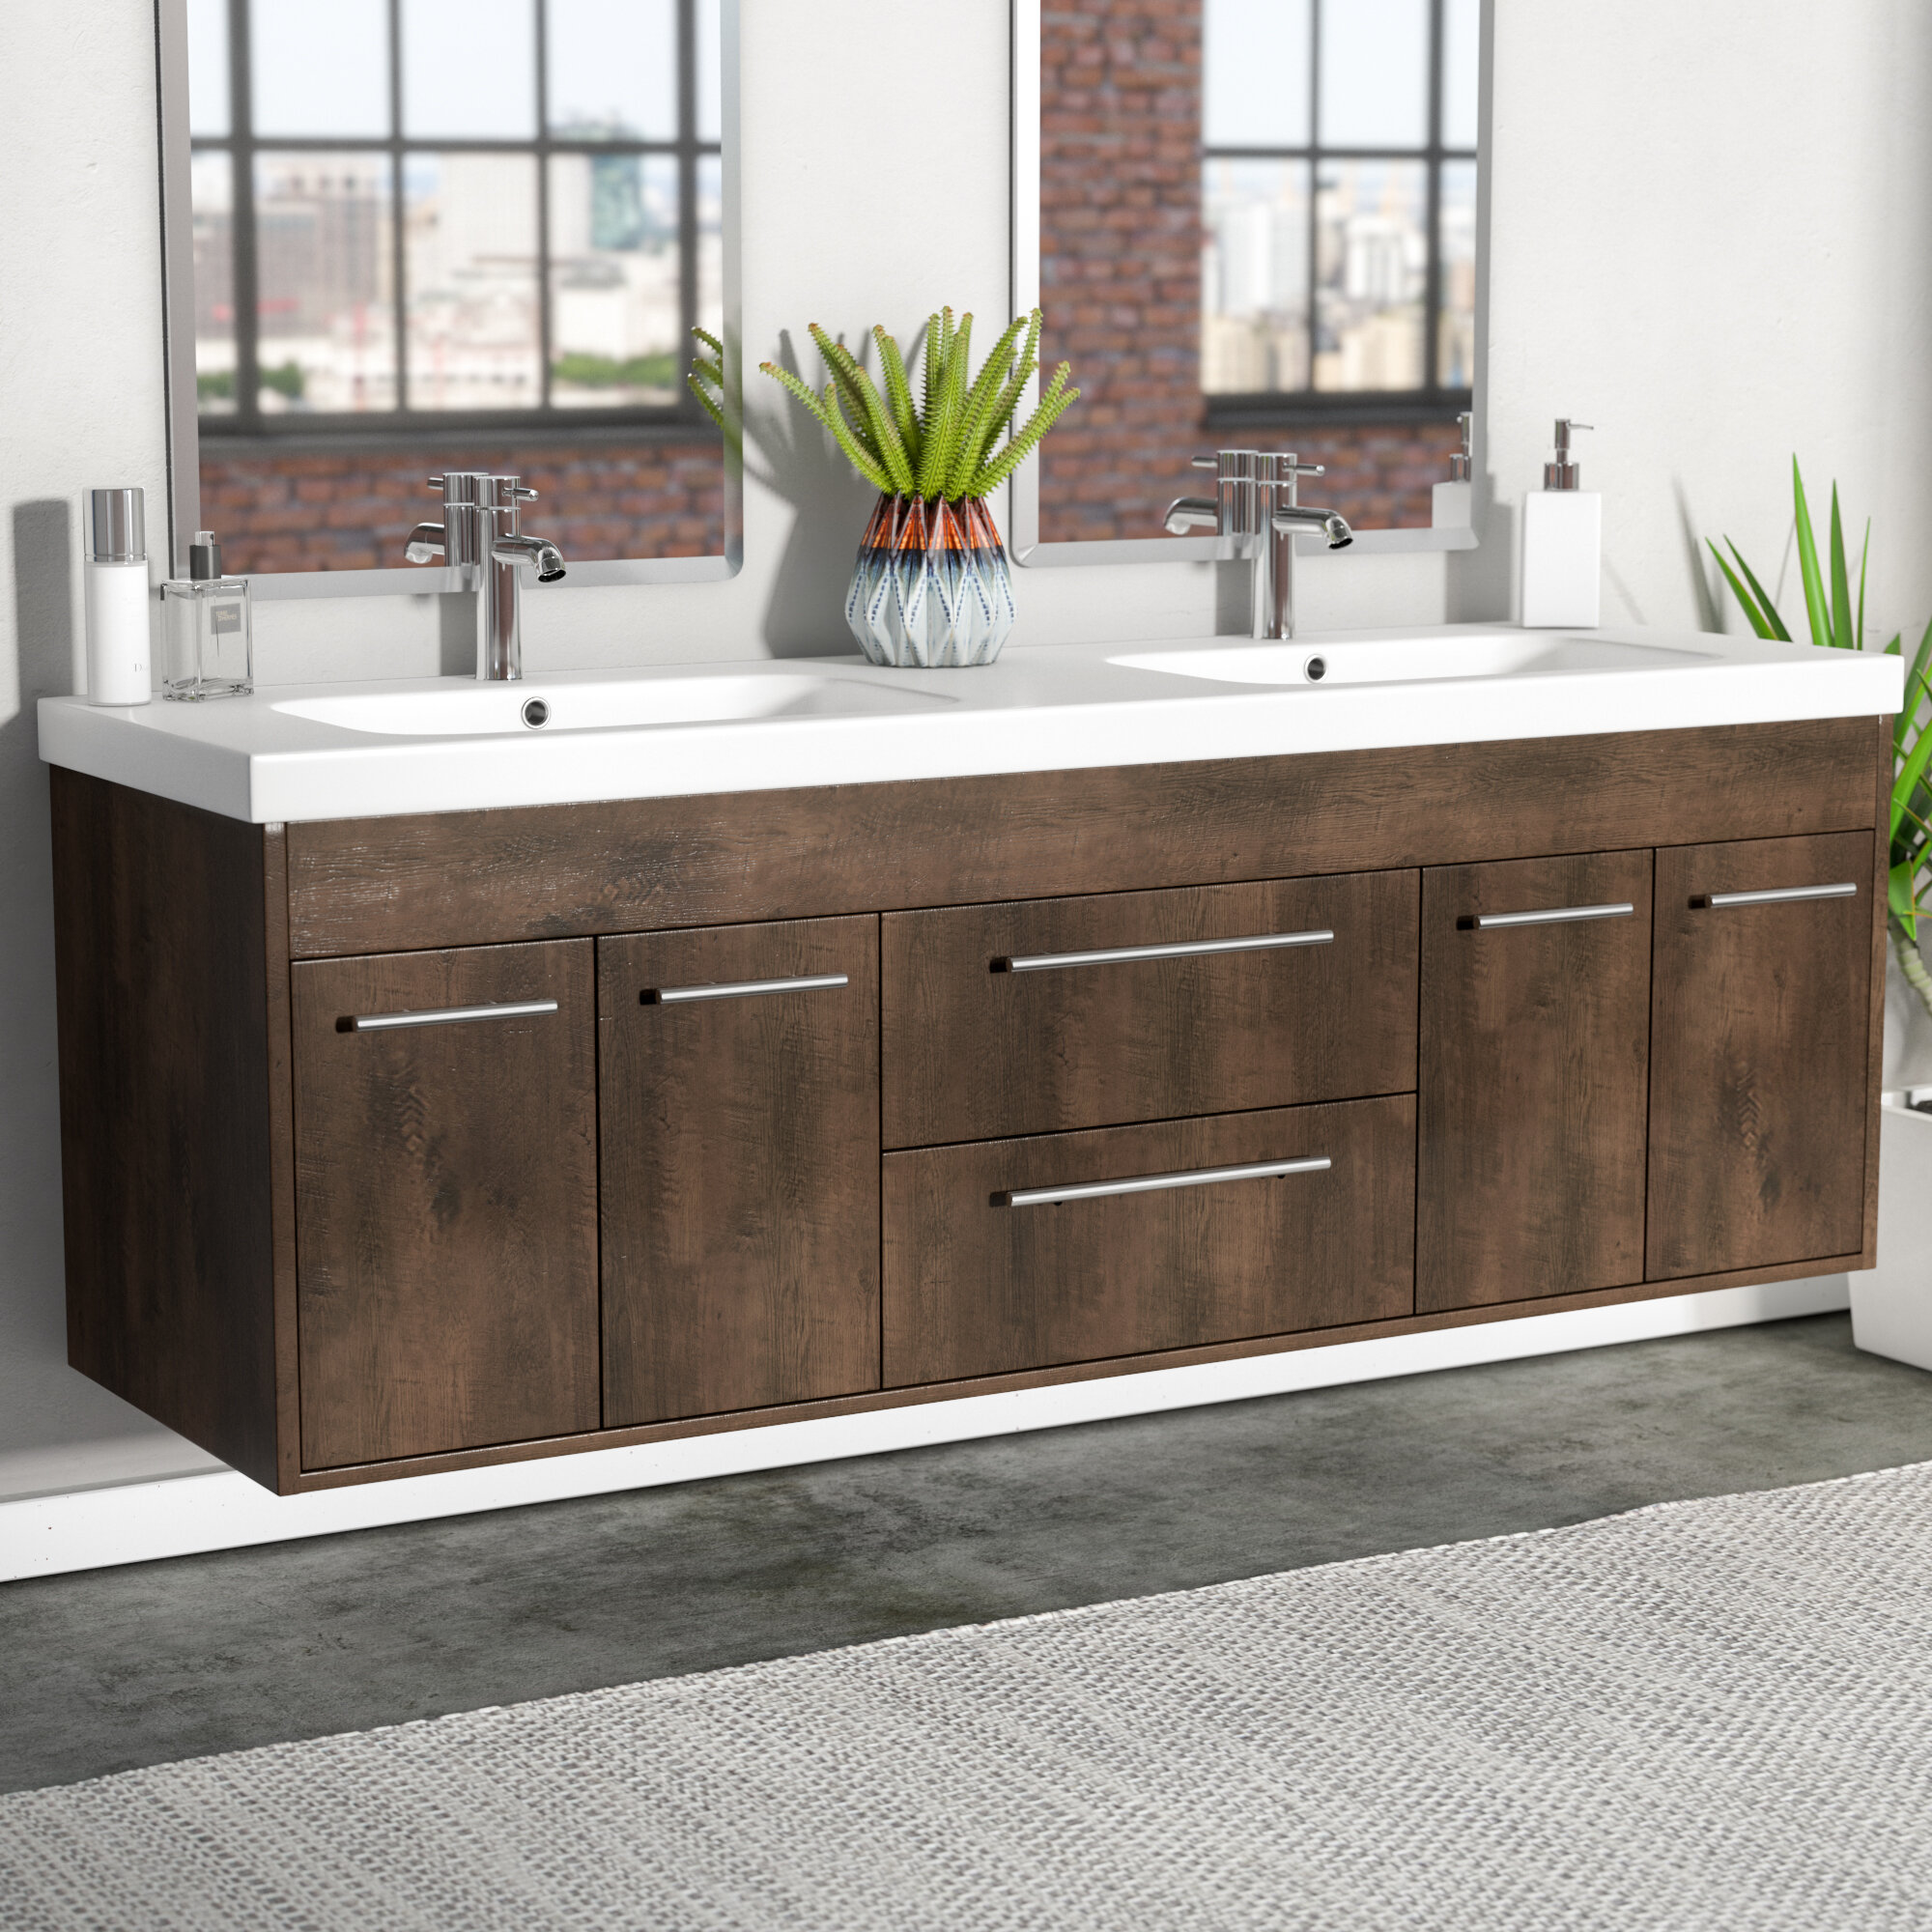 Orren ellis zuzanna 60 modern double bathroom vanity set wayfair